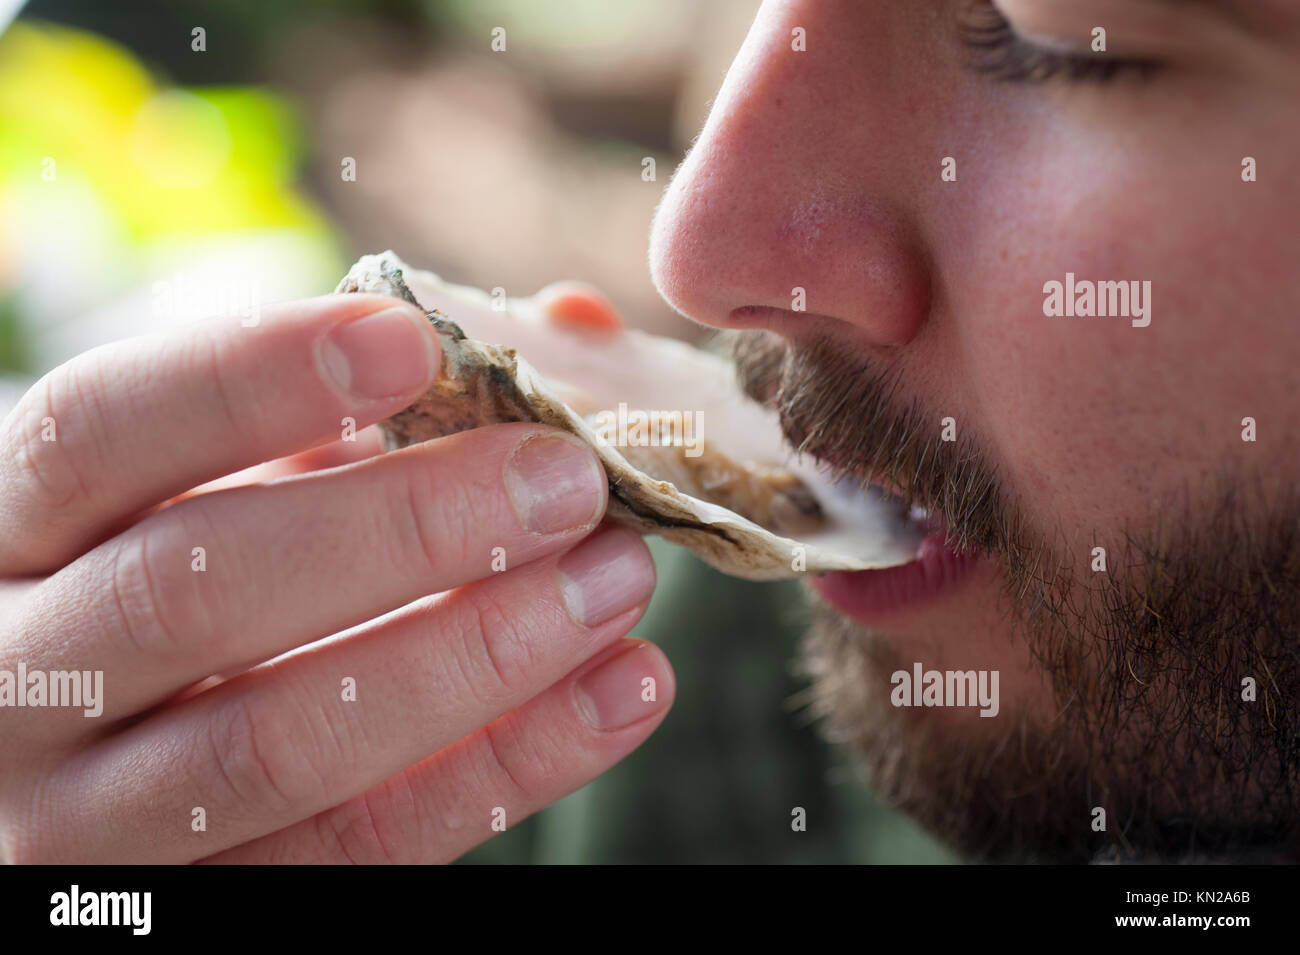 eating shellfish Raw shellfish: the majority of seafood-borne illness is caused by undercooked shellfish, which include oysters, clams, and mussels cooking helps prevent some types of infection, but it does not prevent the algae-related infections that are associated with red tides.